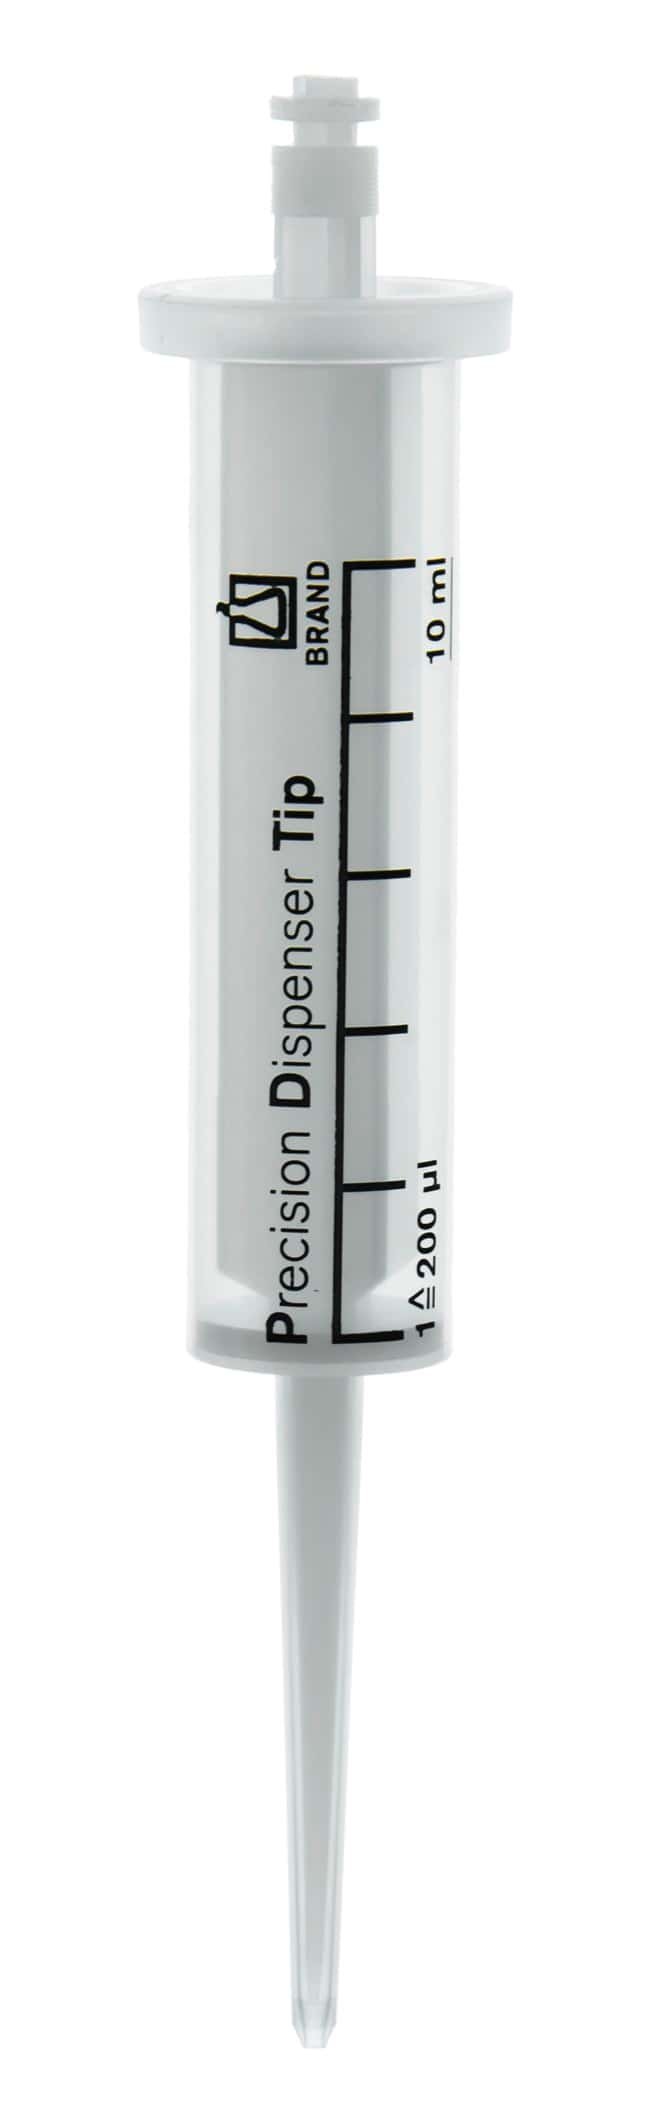 BRAND Sterile PD-Tip II Precision Dispenser Tips for Repeating Pipettes